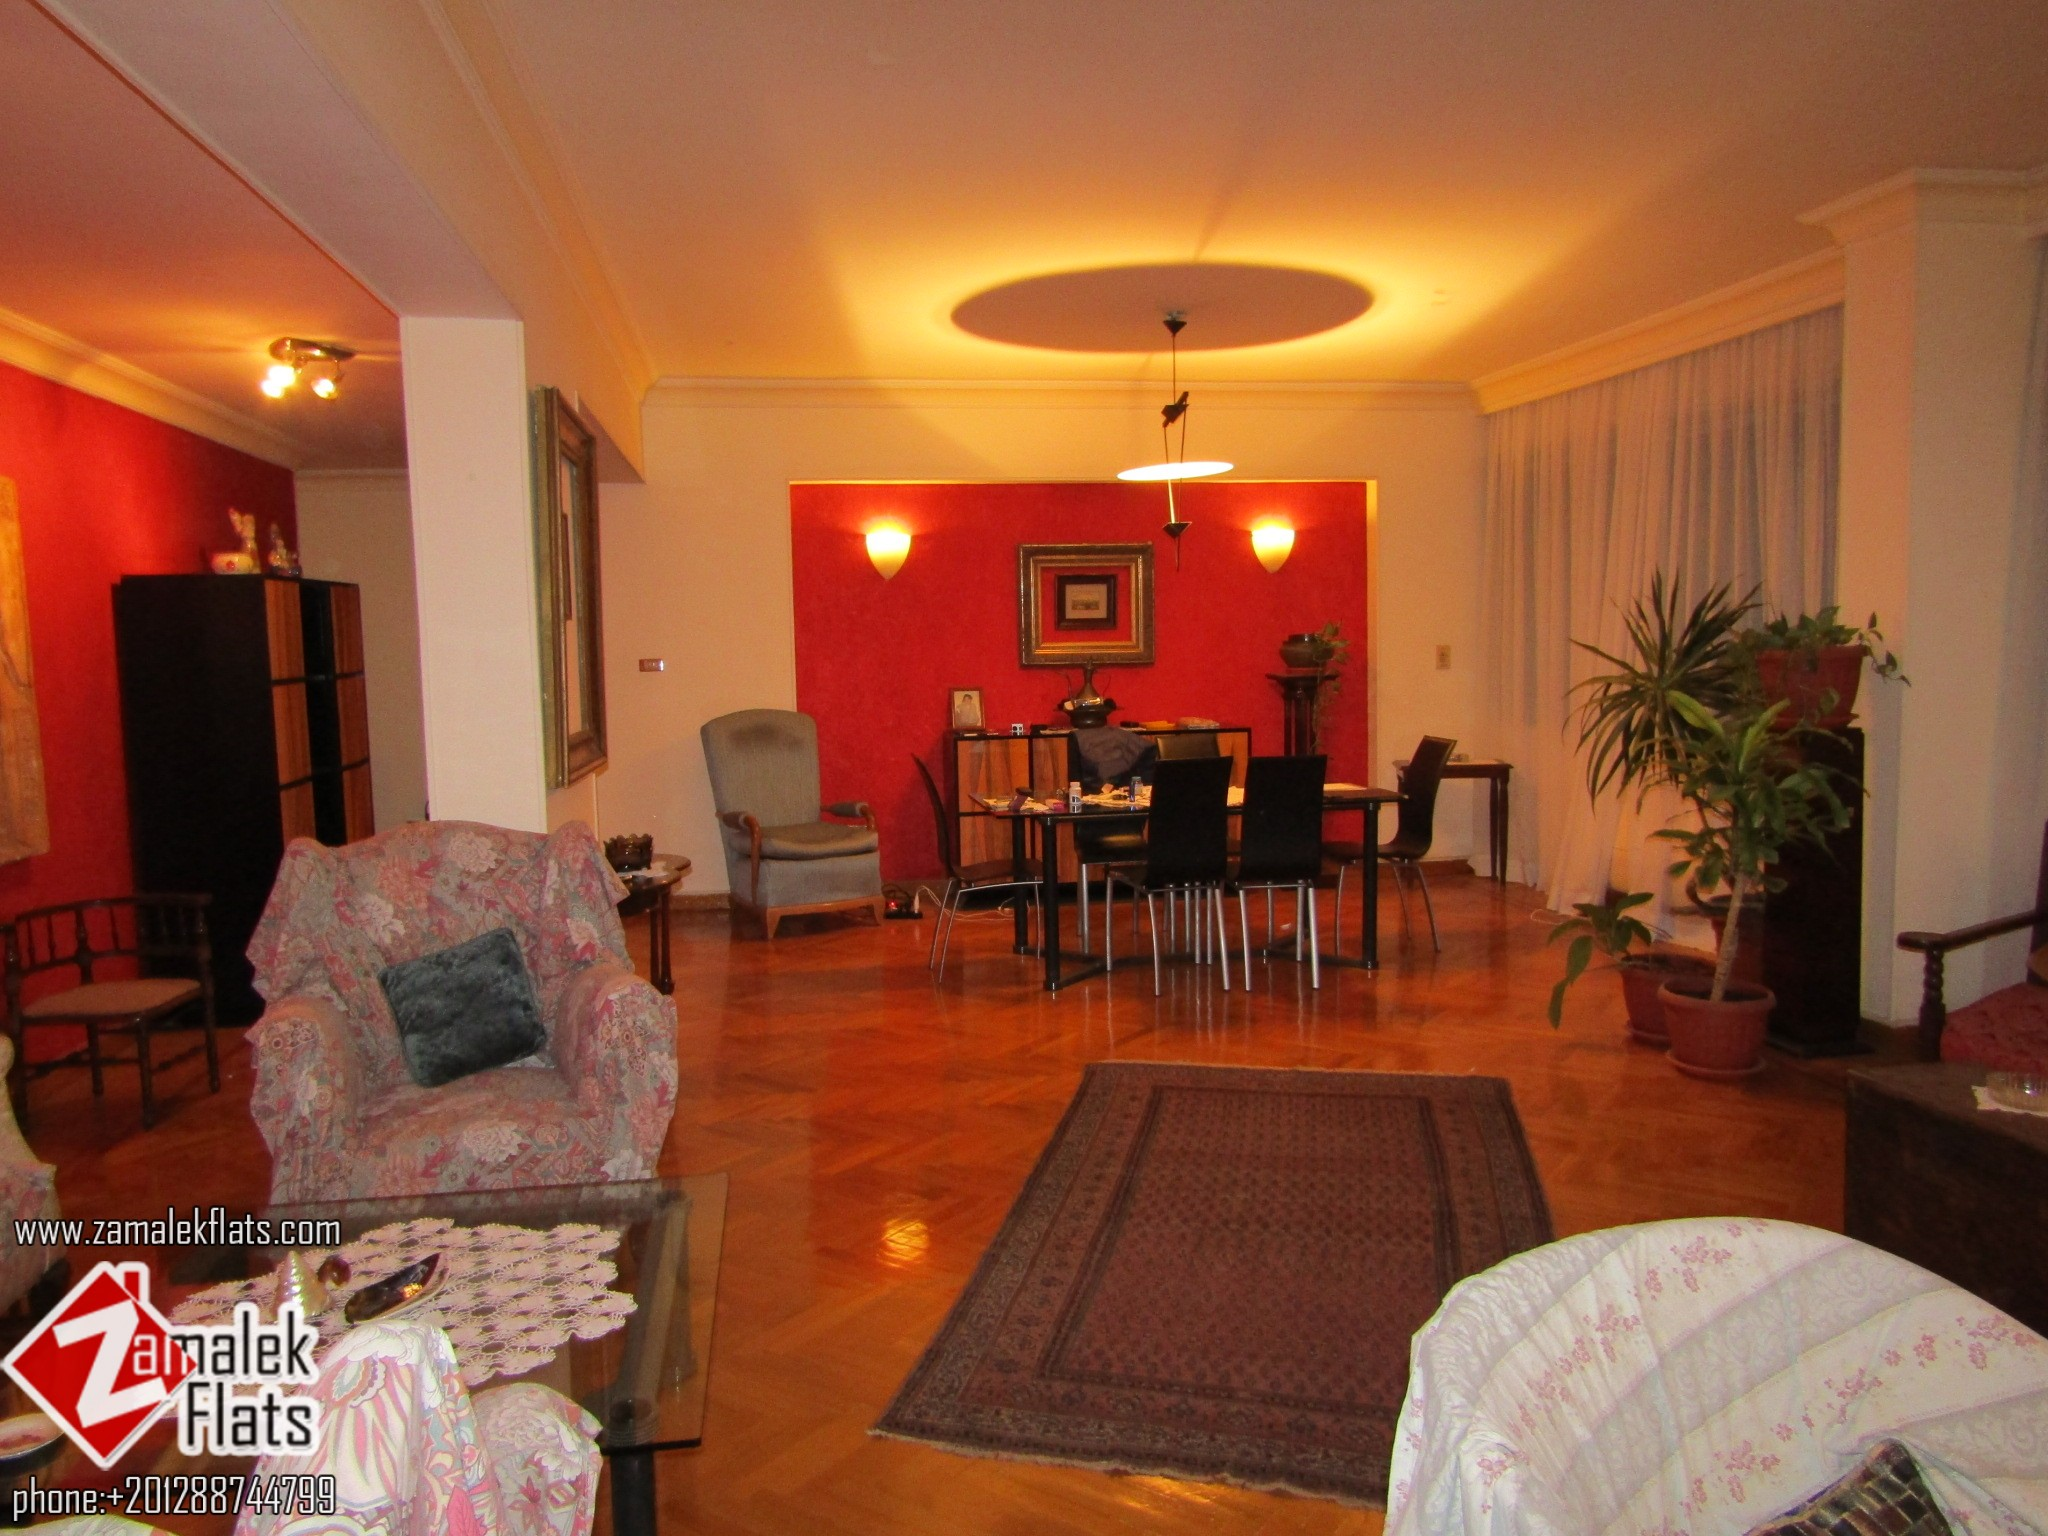 Wonderful Apartment for Sale in zamalek